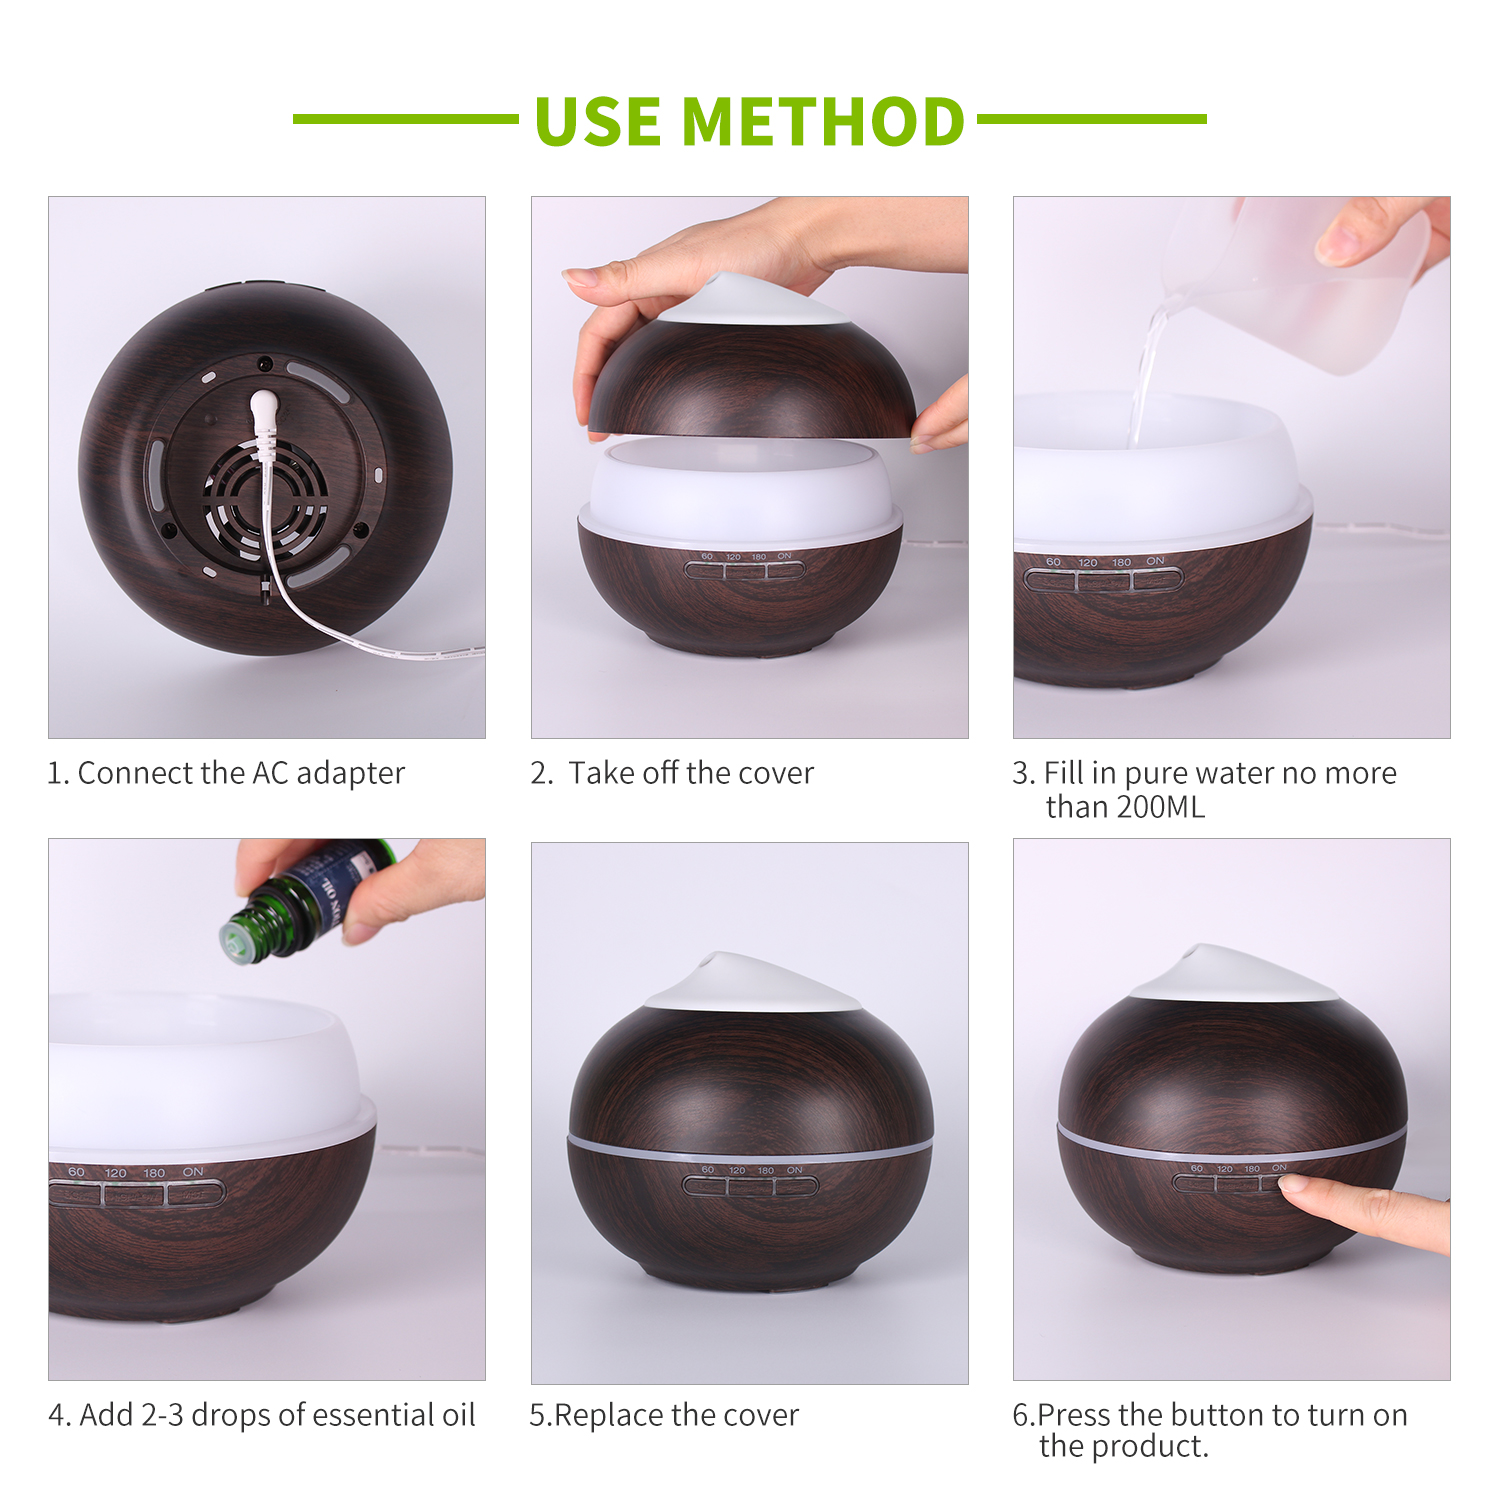 ESSENTIAL OIL DIFFUSER (5)